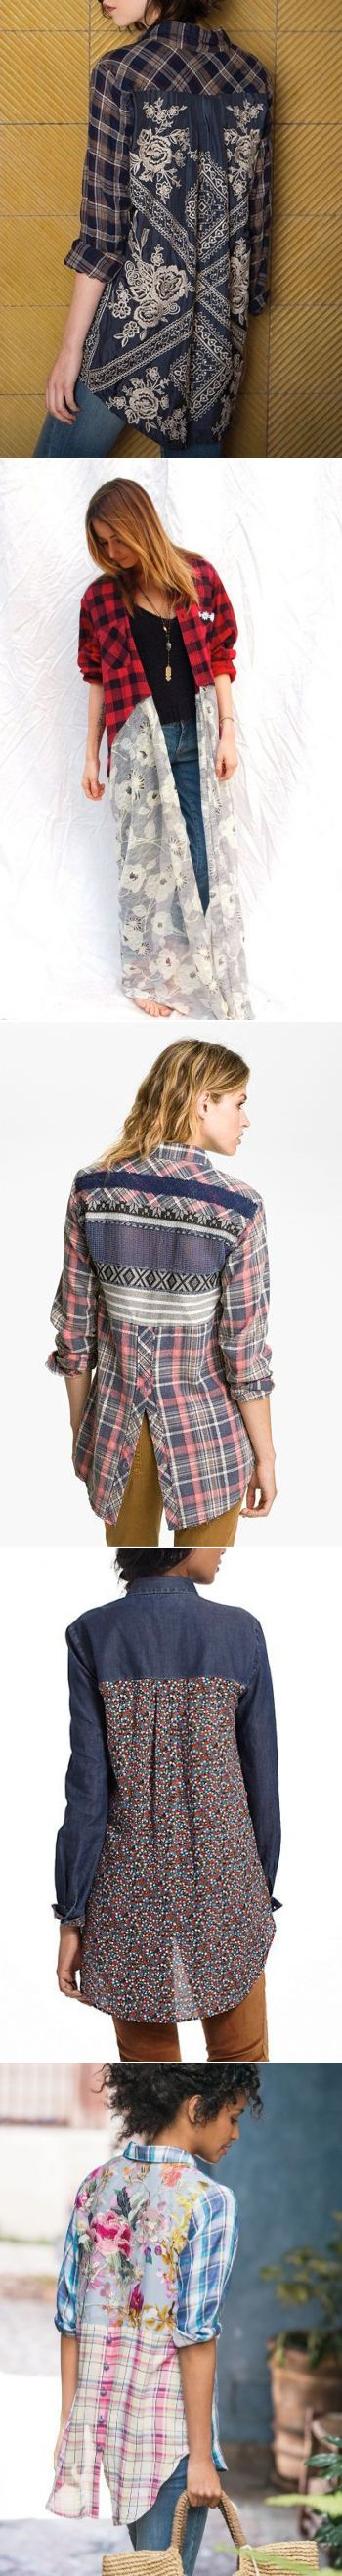 I like the diy redesign of the is plaid shirt